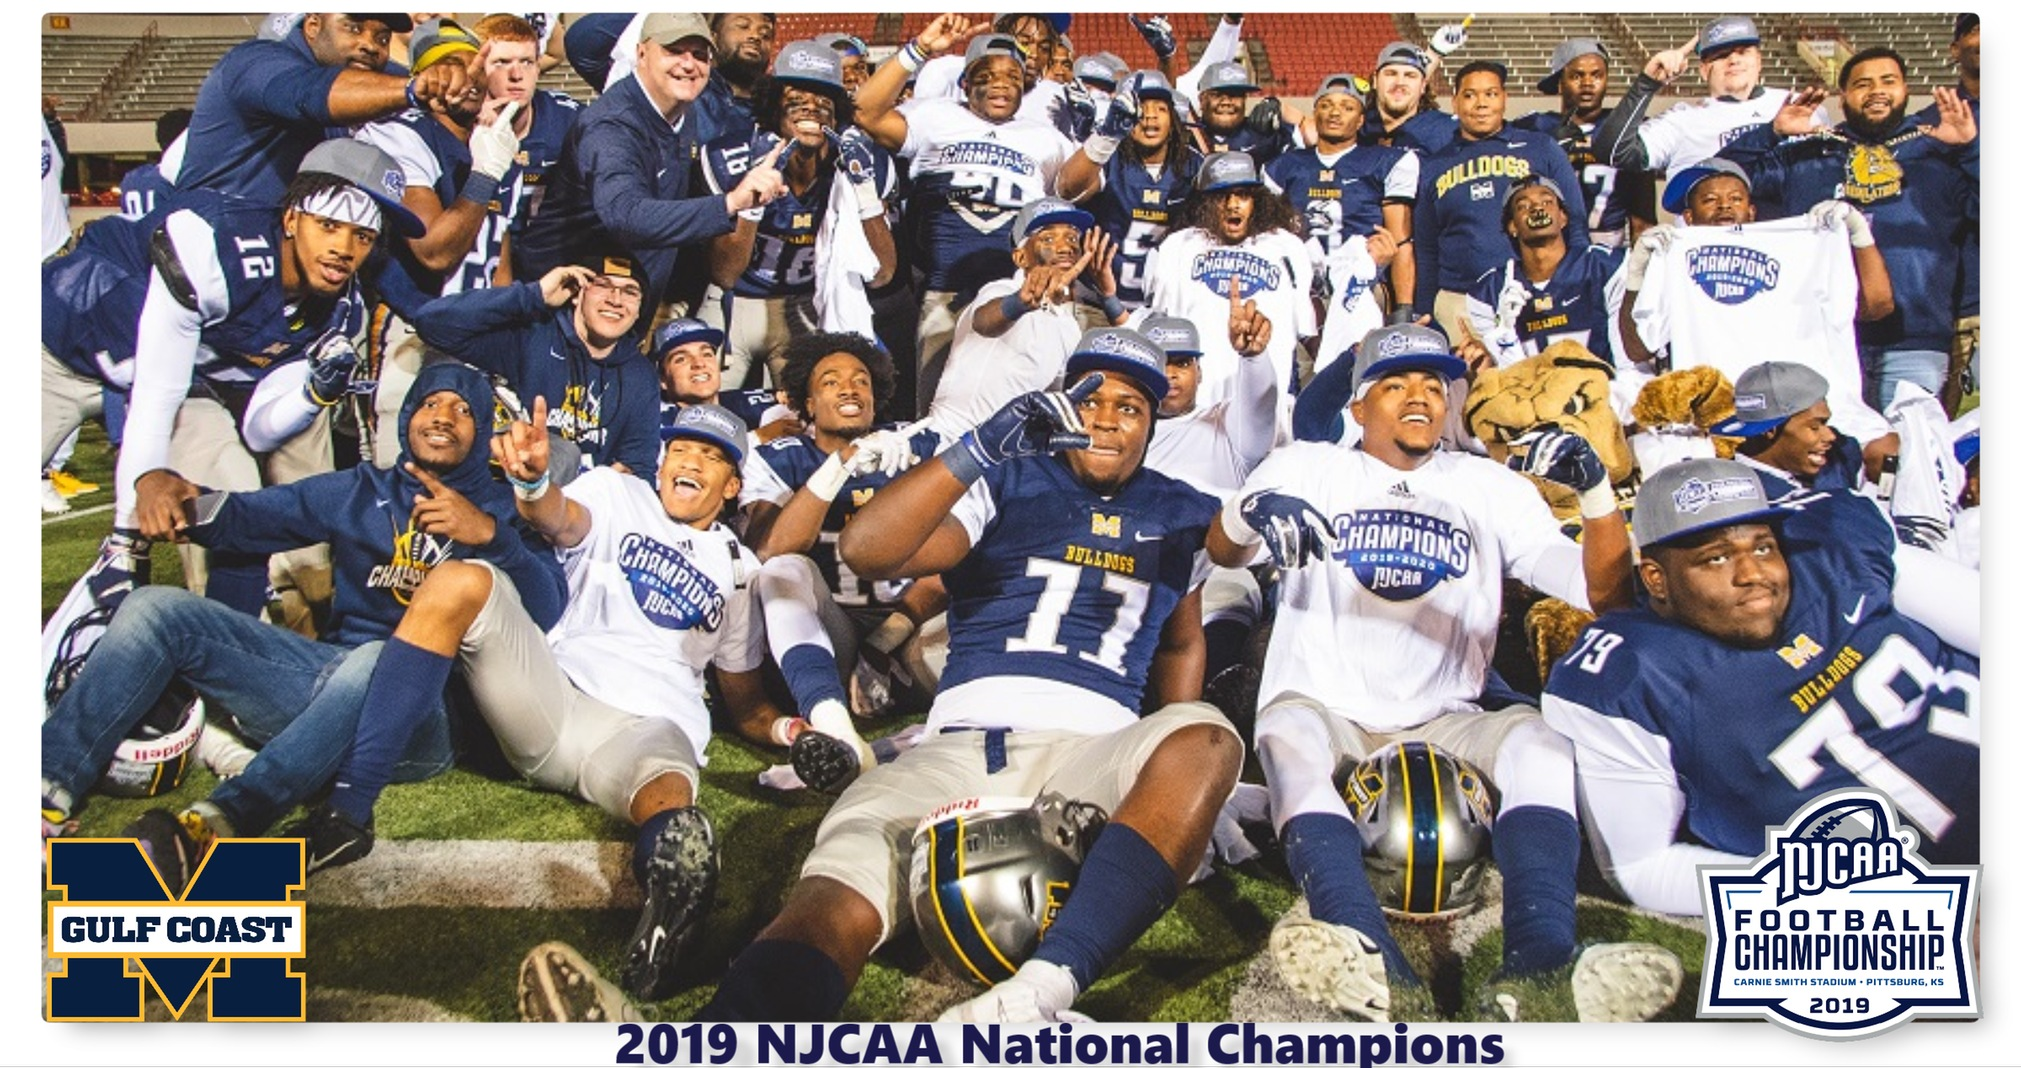 MISSISSIPPI GULF COAST WINS 5TH NATIONAL CHAMPIONSHIP